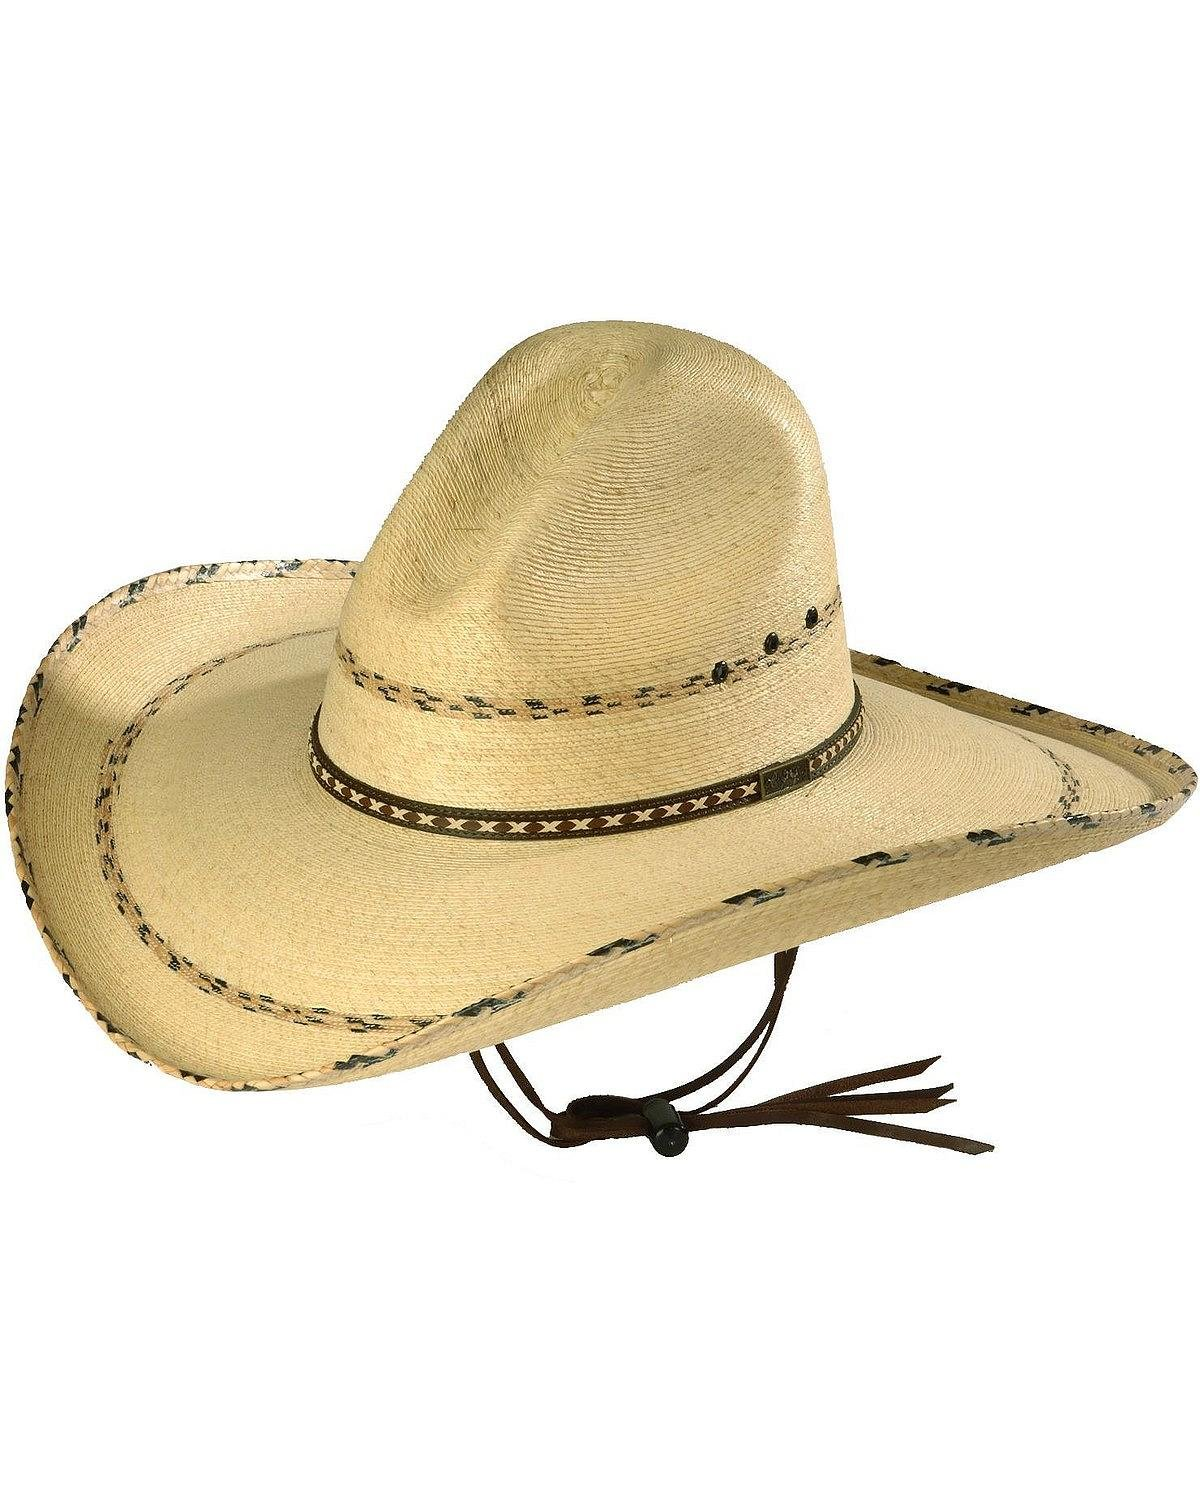 8462e5440a8cd Larry Mahan Men s 30X Pancho Hat   Cowboy Hats   Clothing